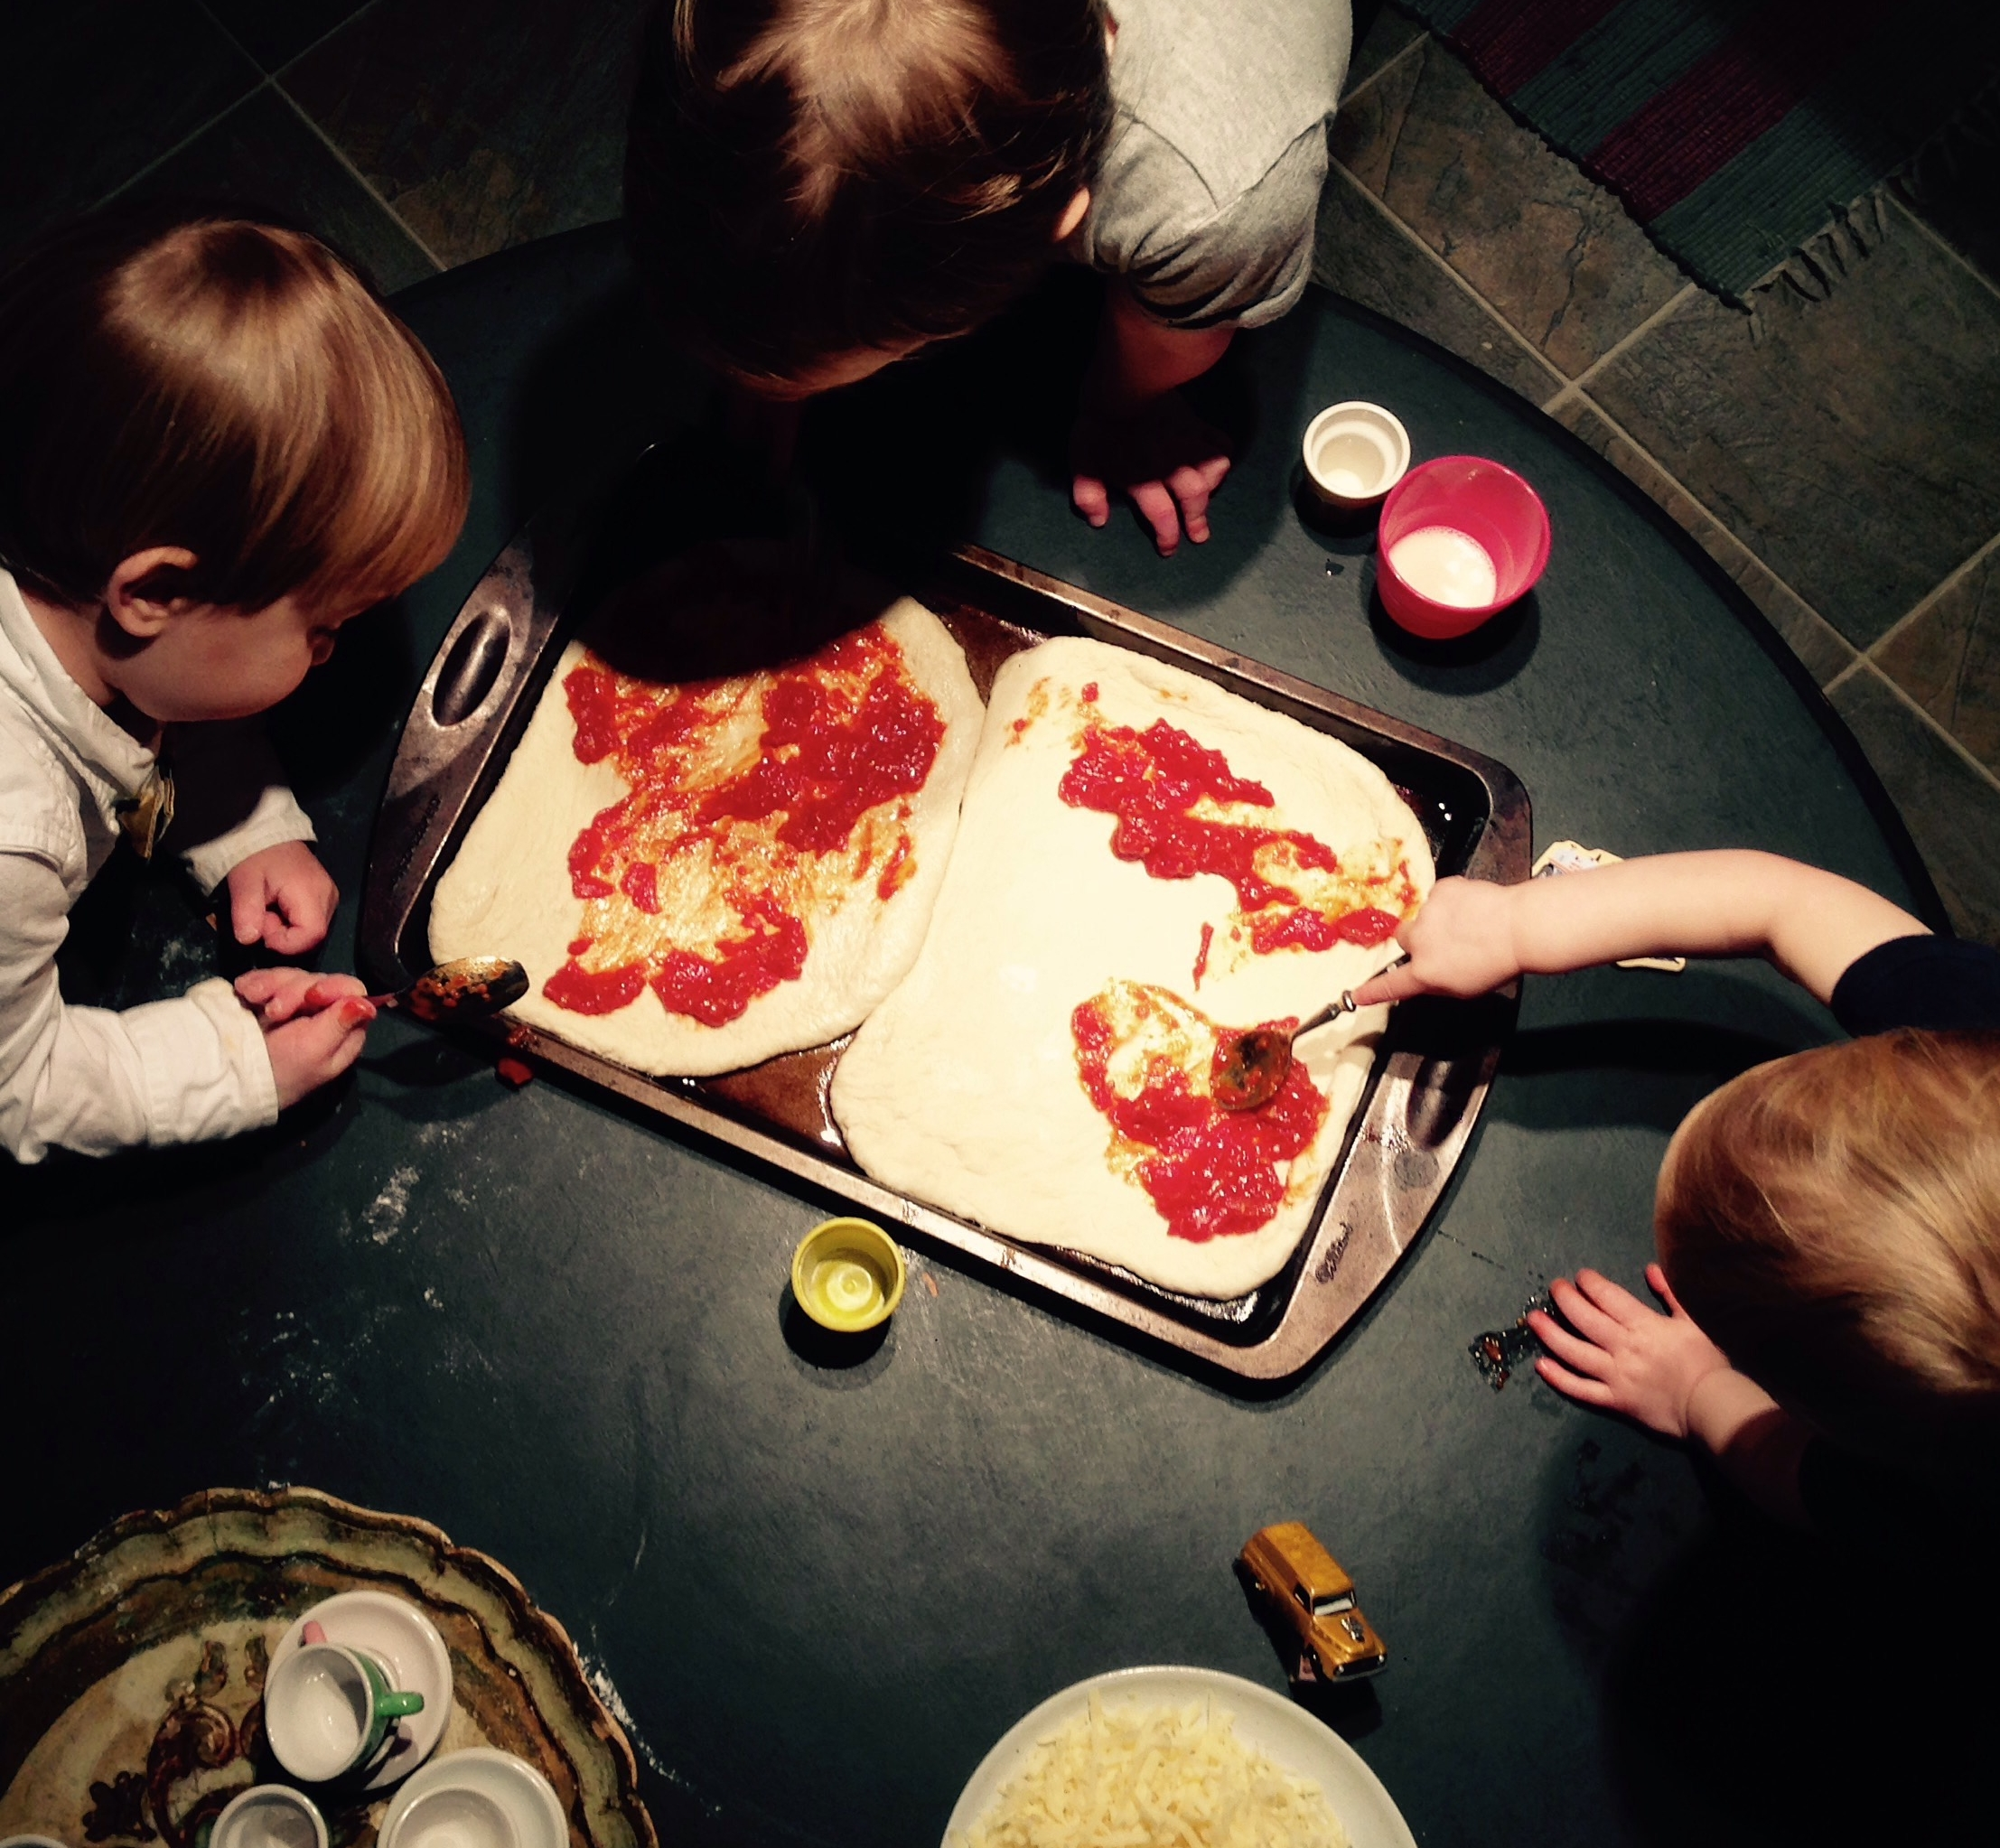 Pizza +kids in the kitchen = natural combo